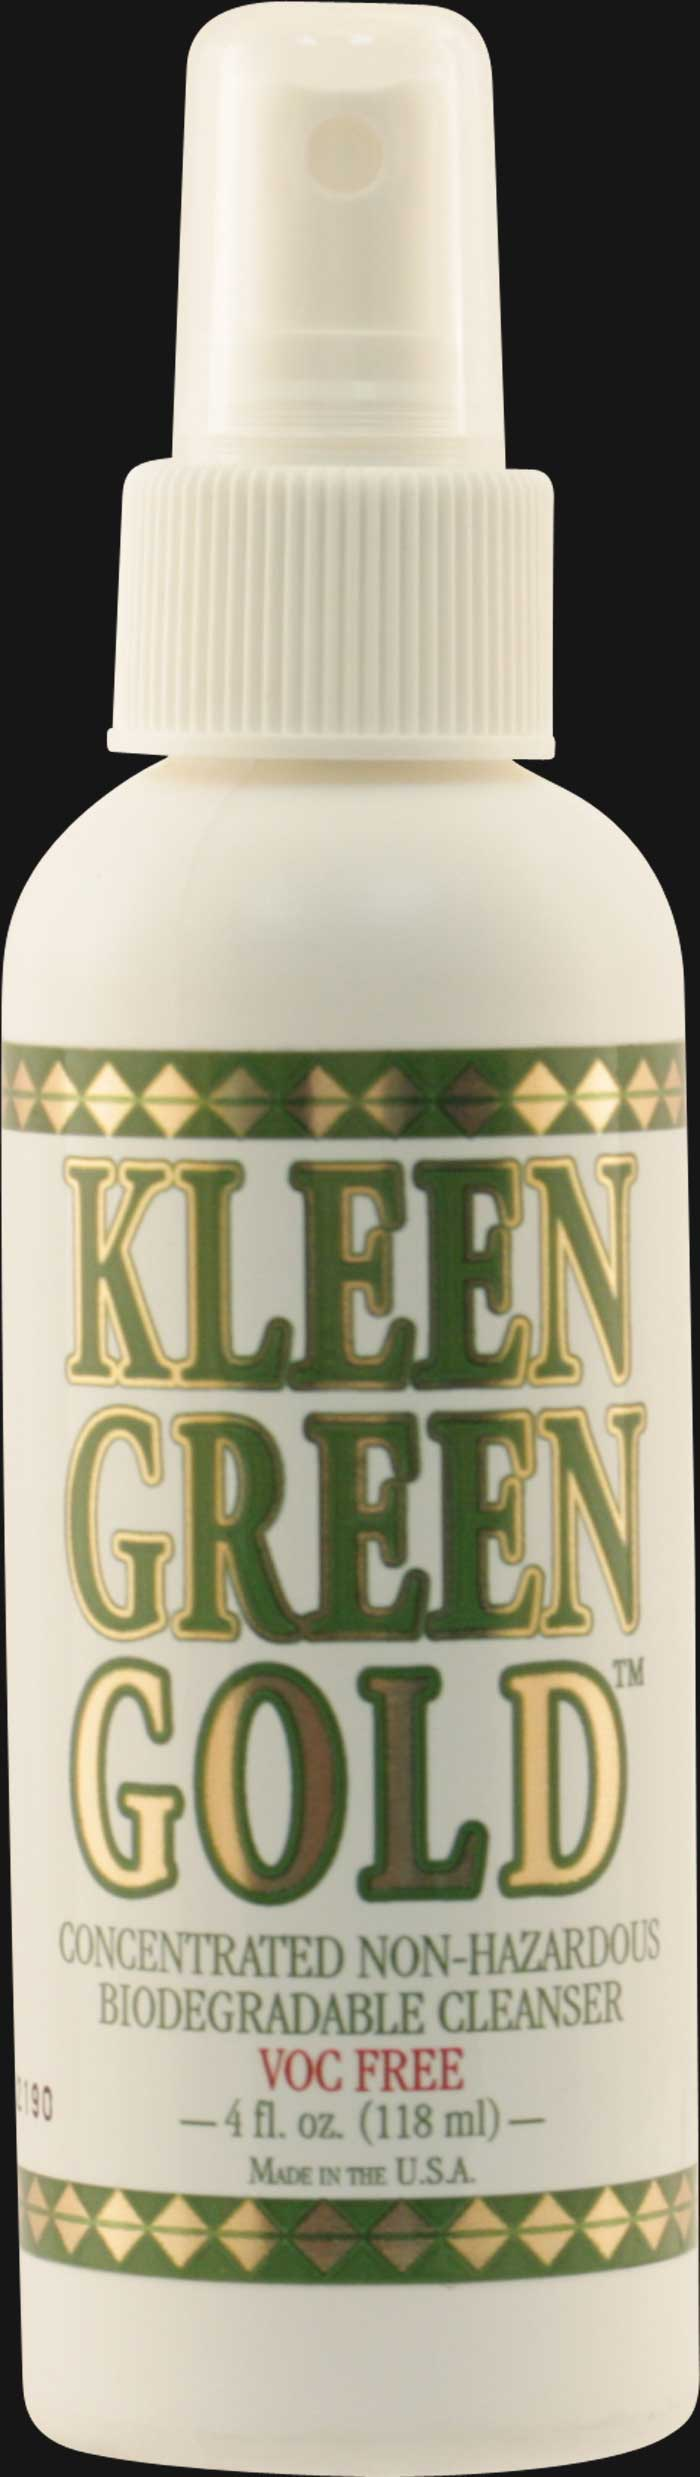 Kleen Green Gold - Multi-Purpose Concentrated Pipe Cleaner Spray 4 OZ.